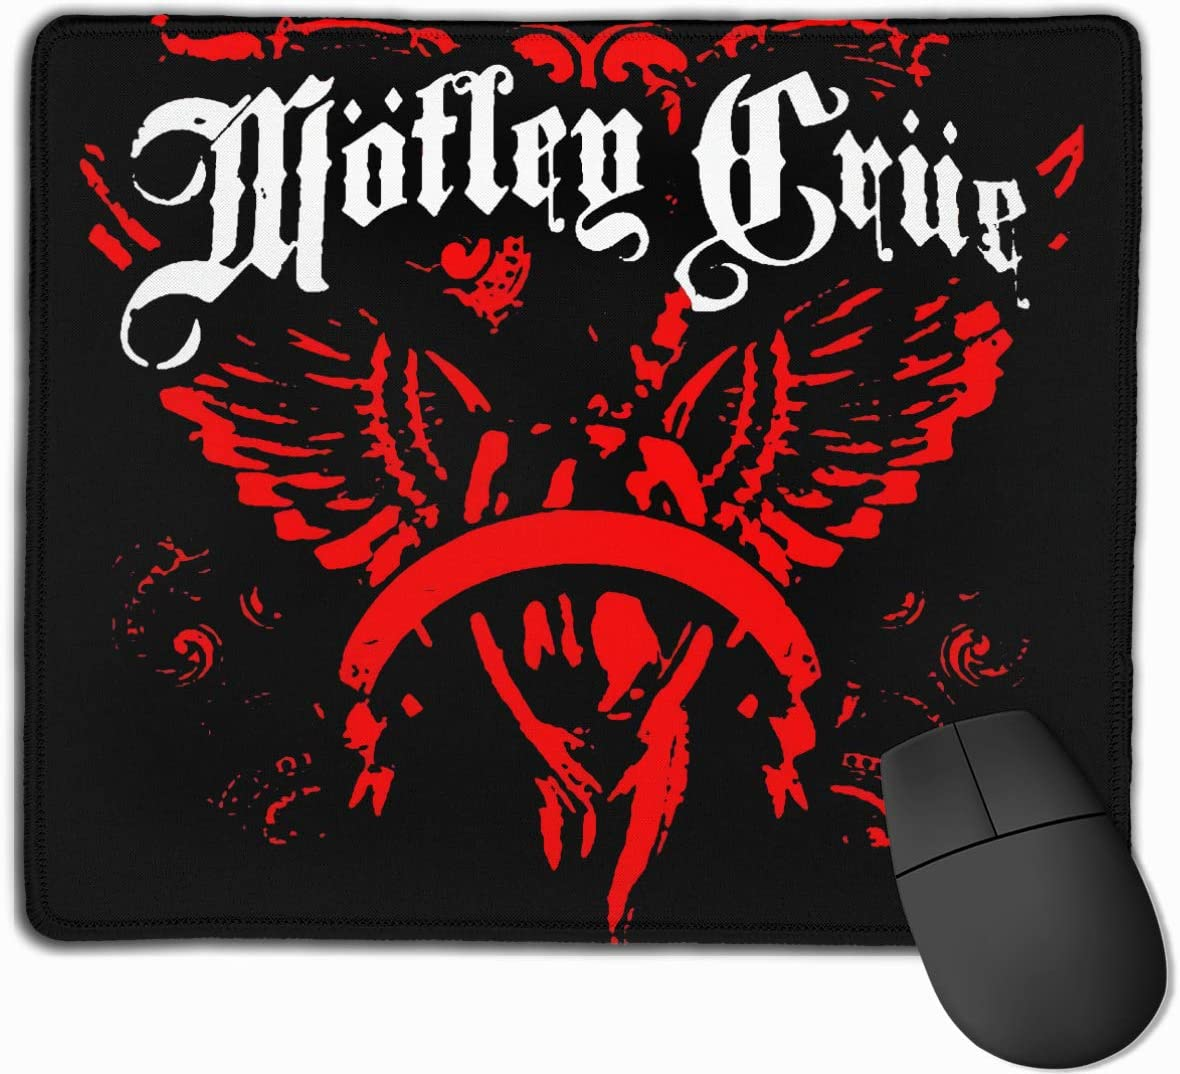 Motley Crue Mouse Pad with Stitched Edges Quality Textured Mouse Pad for Laptops Computer and PC Non-Slip Rubber Base Mouse Pad